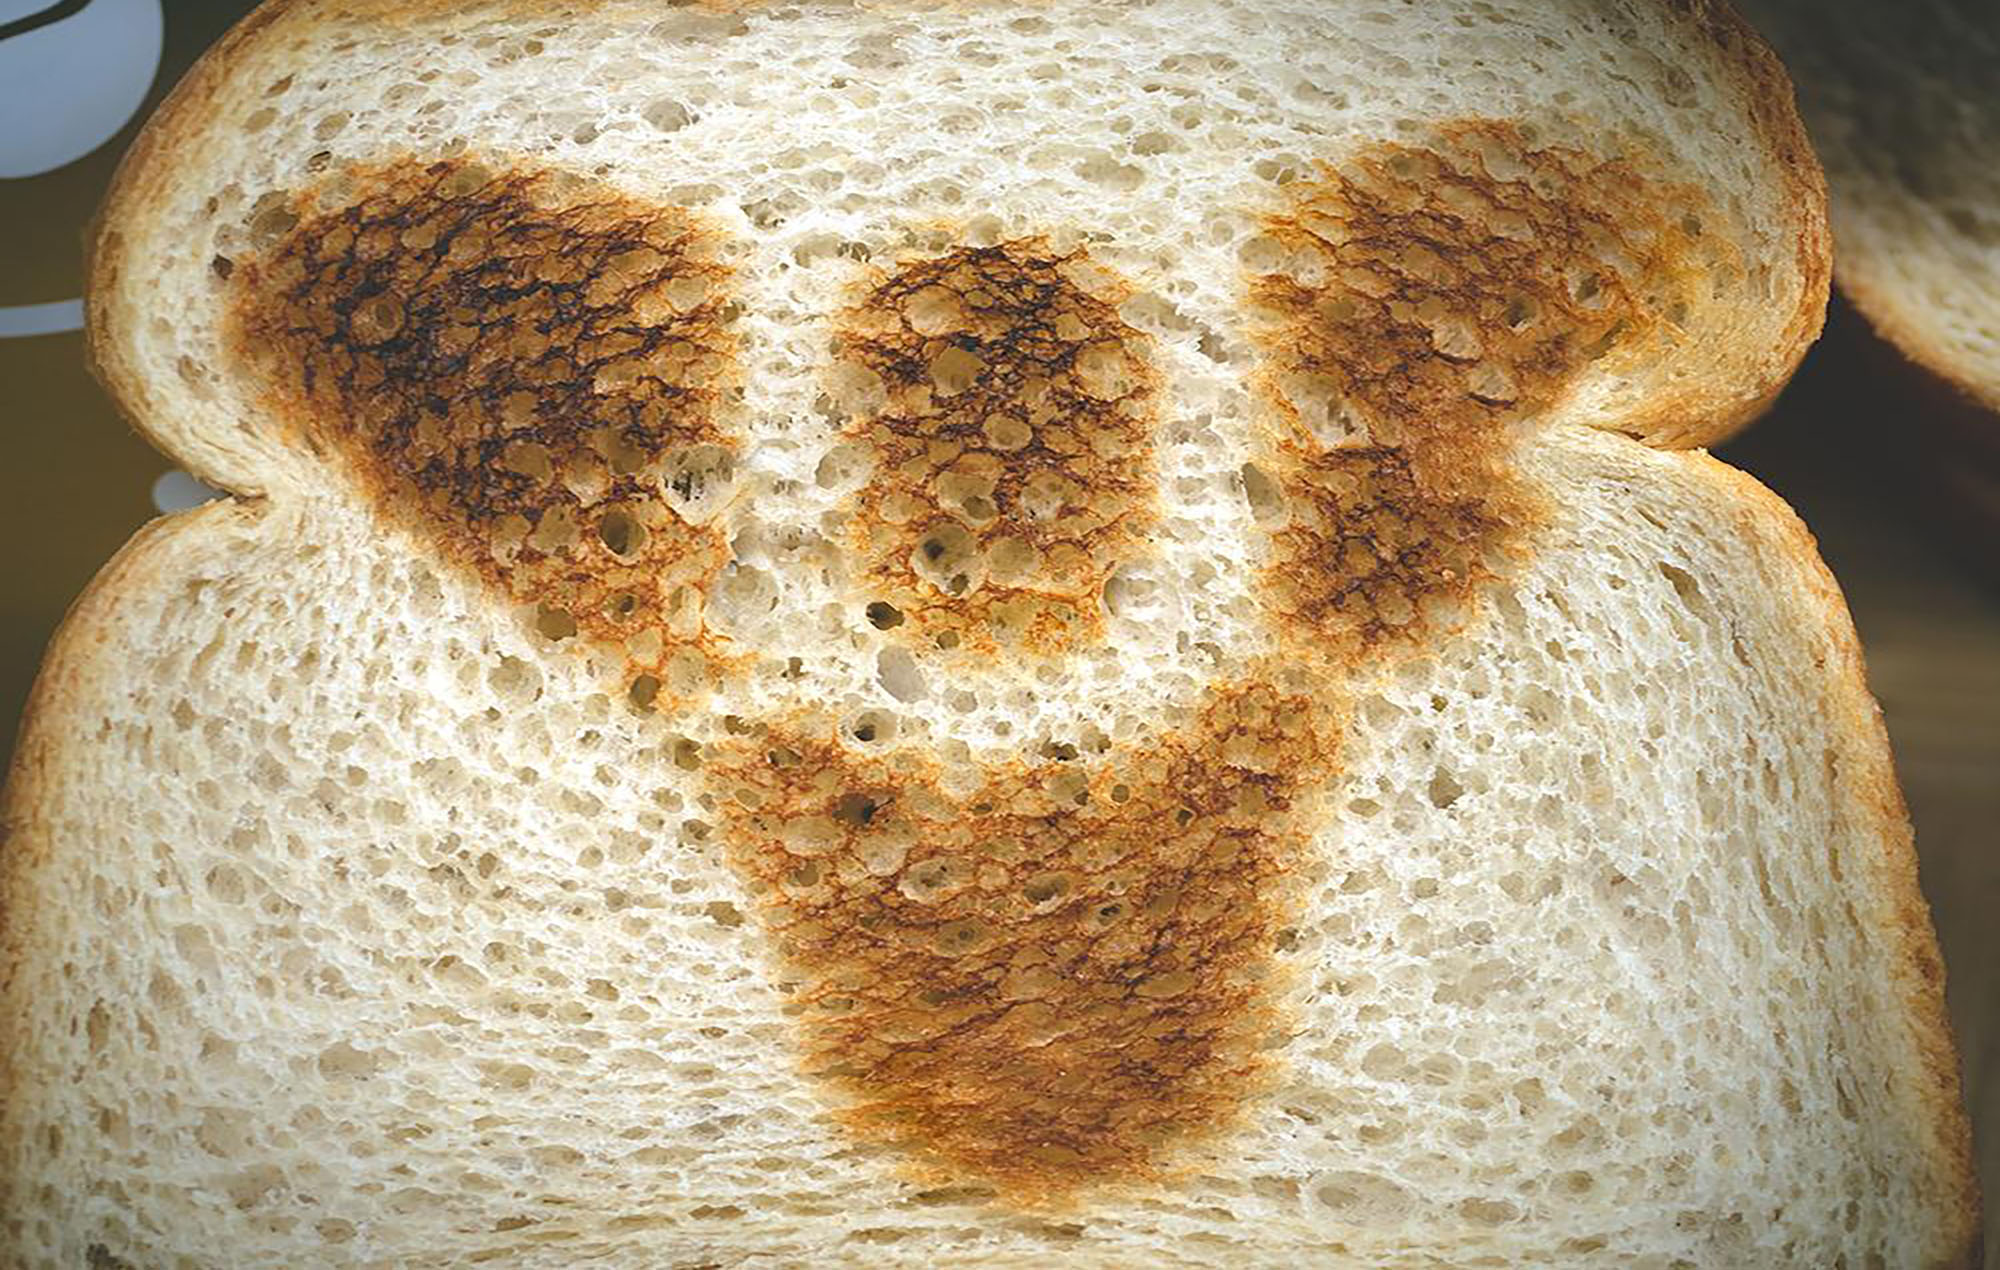 The toast from the Destiny toaster. Image credit: Bungie